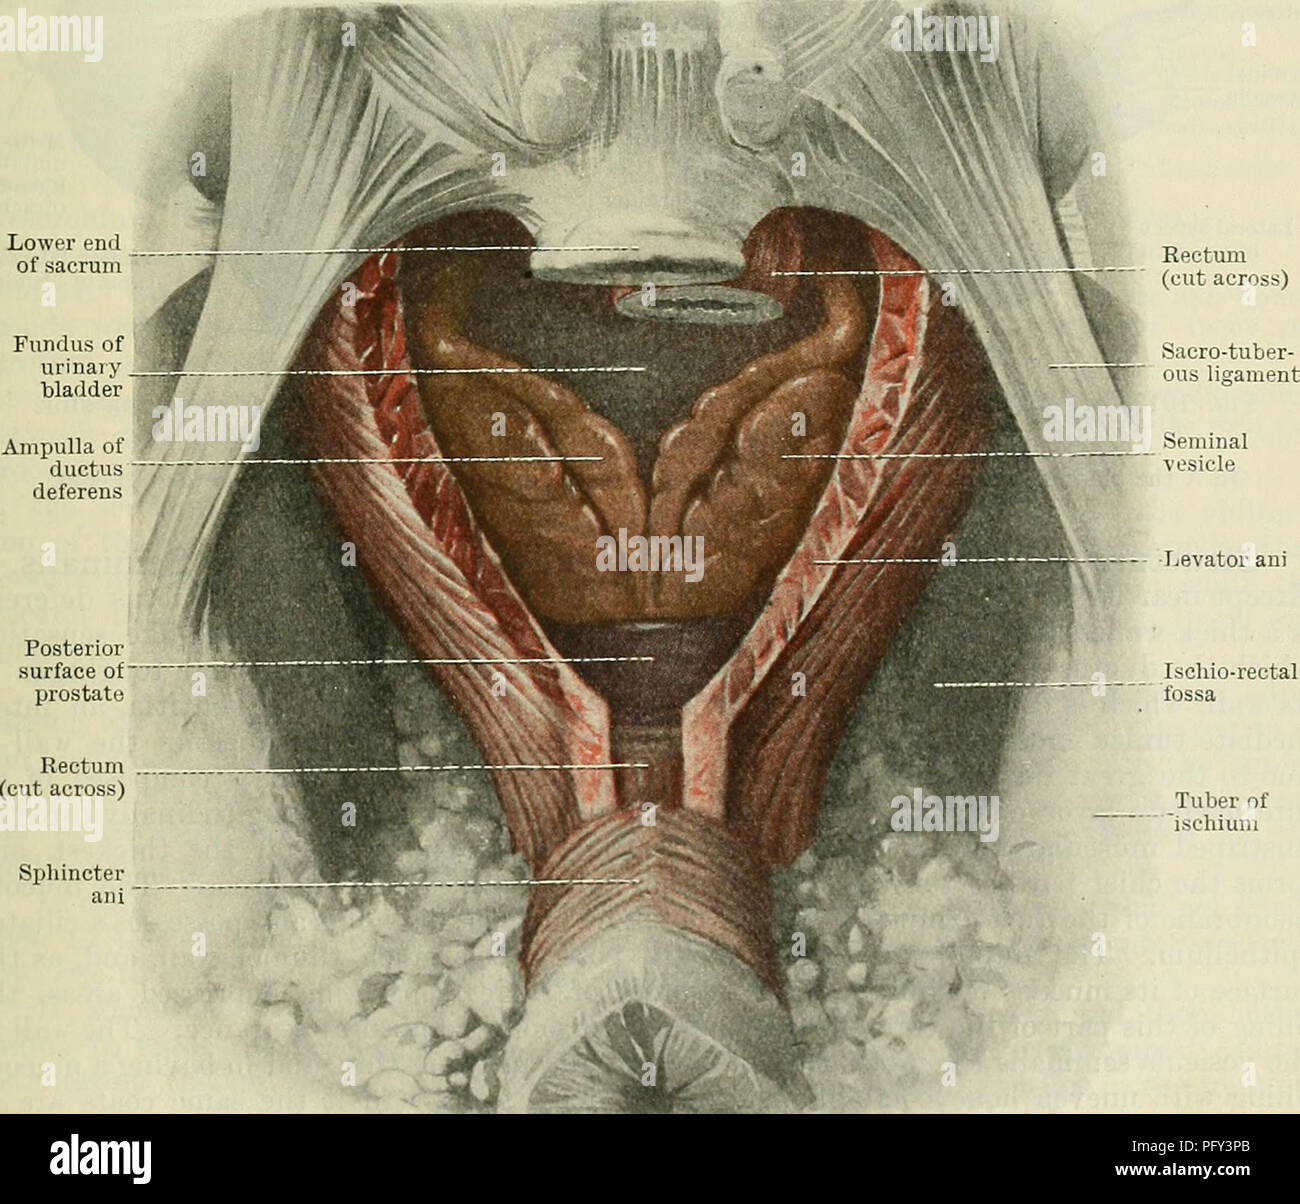 Cunninghams Text Book Of Anatomy Anatomy Rectum Lower End Of